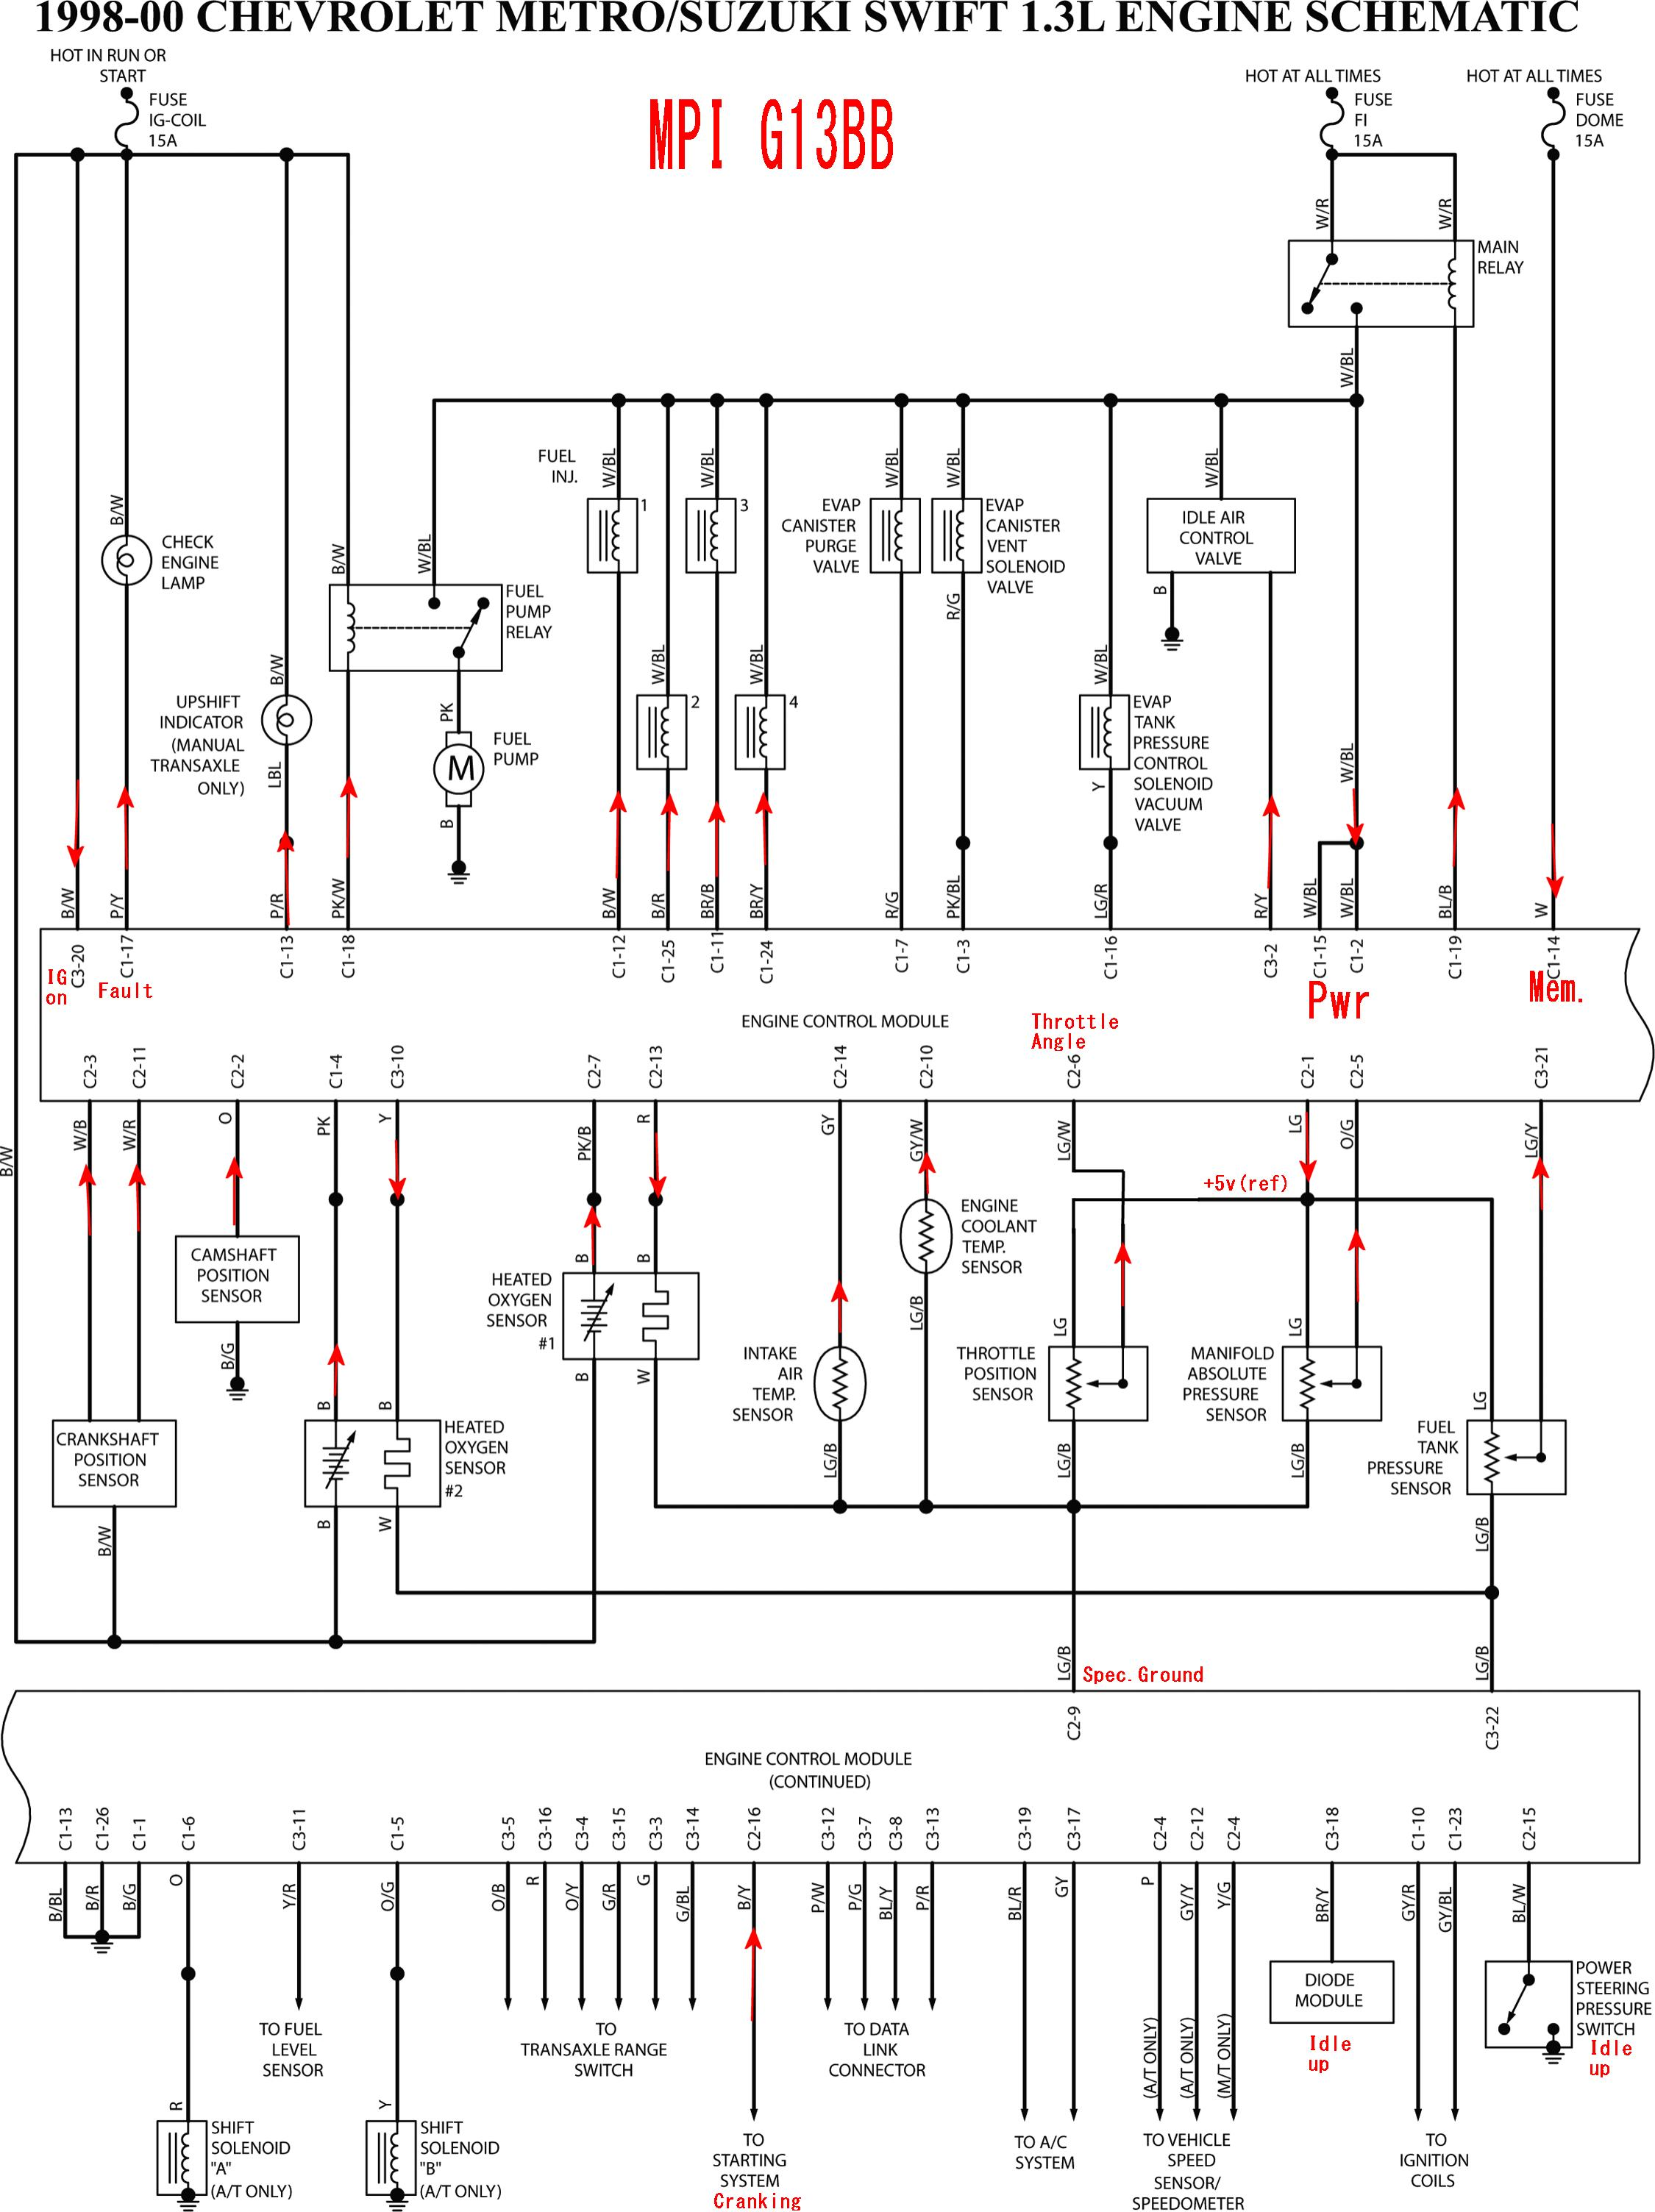 1998 Pontiac Montana Wiring Schematic Data Diagrams 2000 Diagram Images Gallery